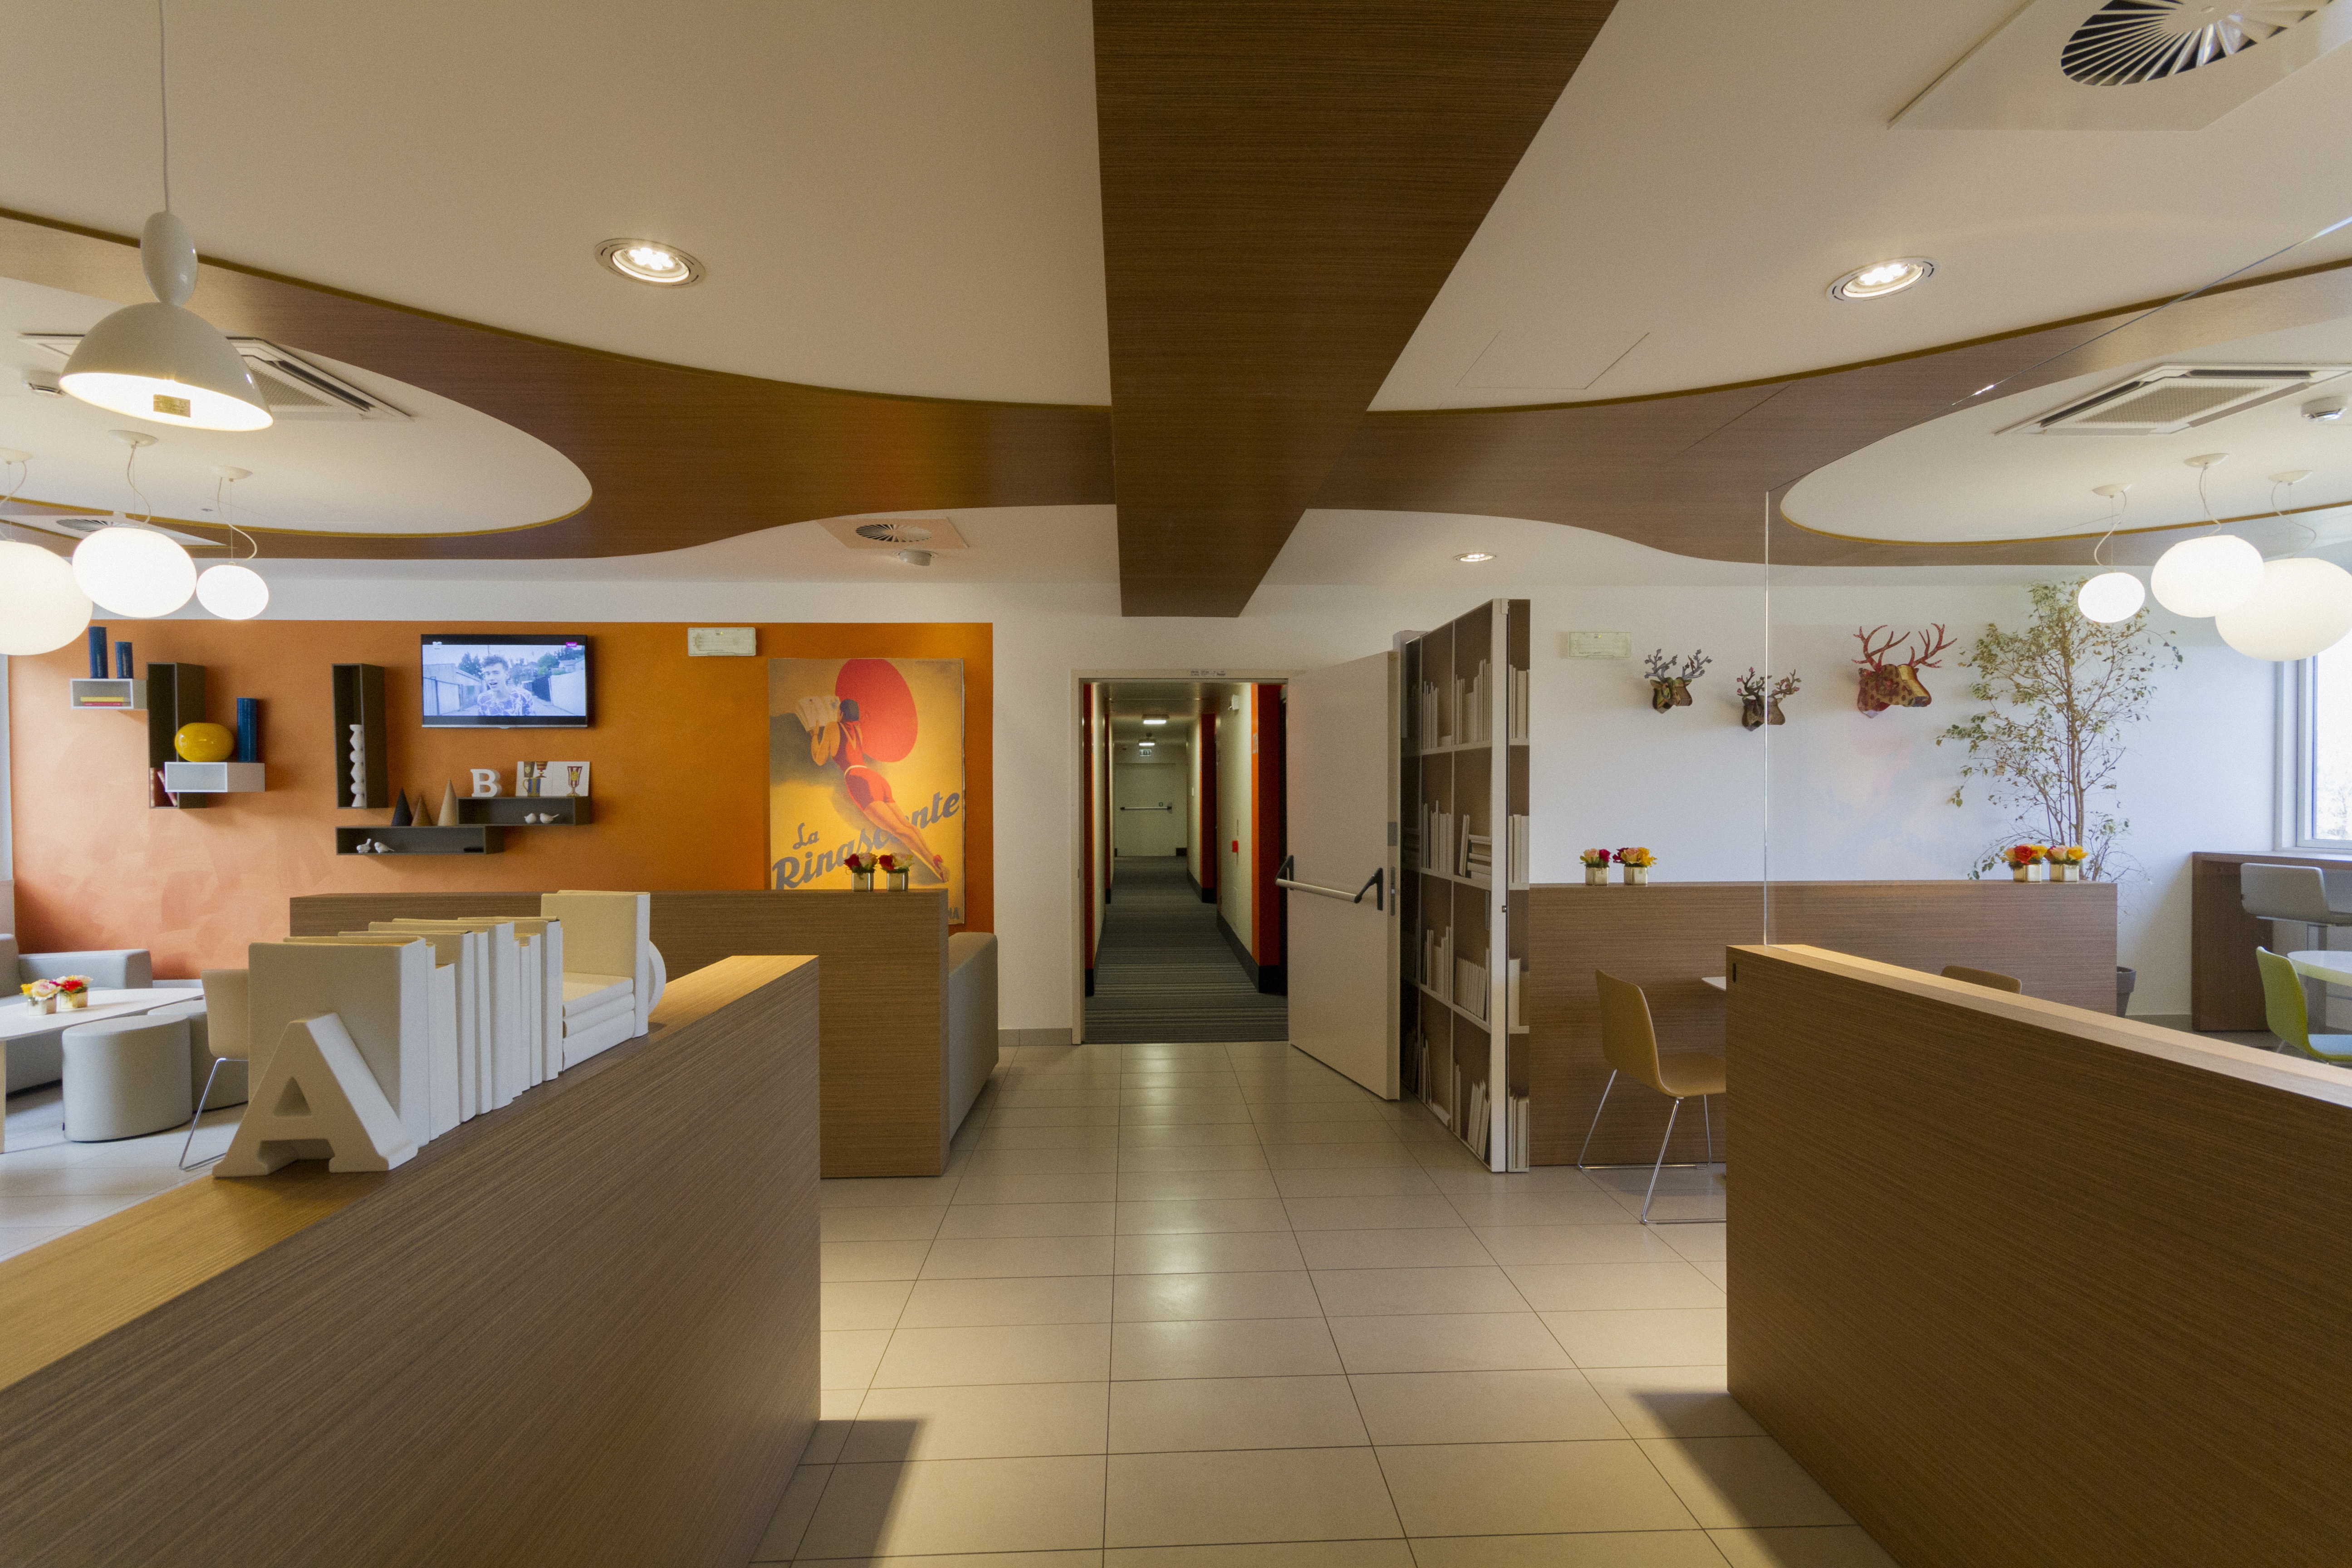 Student Apartment for rent in B&B Cenisio, Via Messina  38, 1° floor, in Milano, Italy